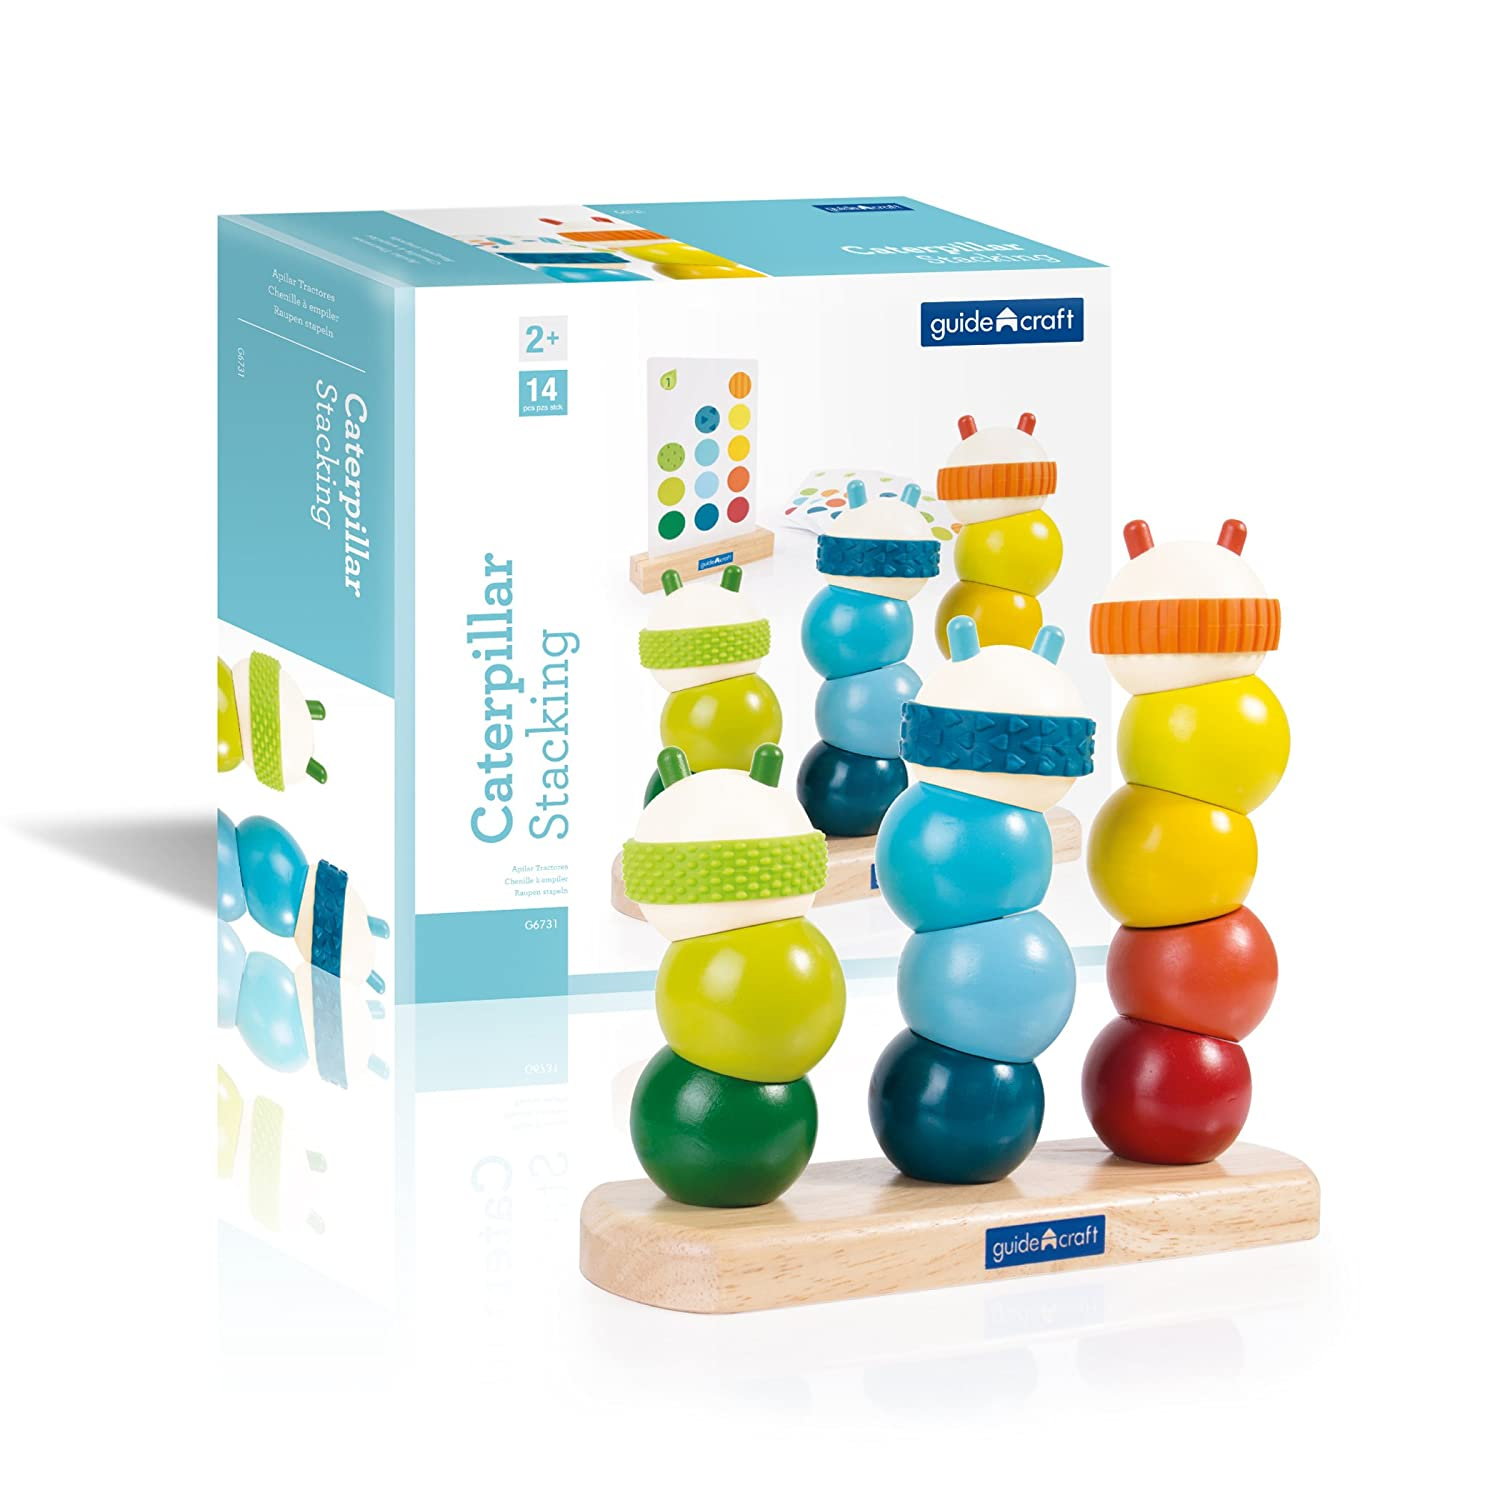 Kids Early Learning Development Toys Manipulative Toddler Toy Guidecraft Caterpillar Stacking